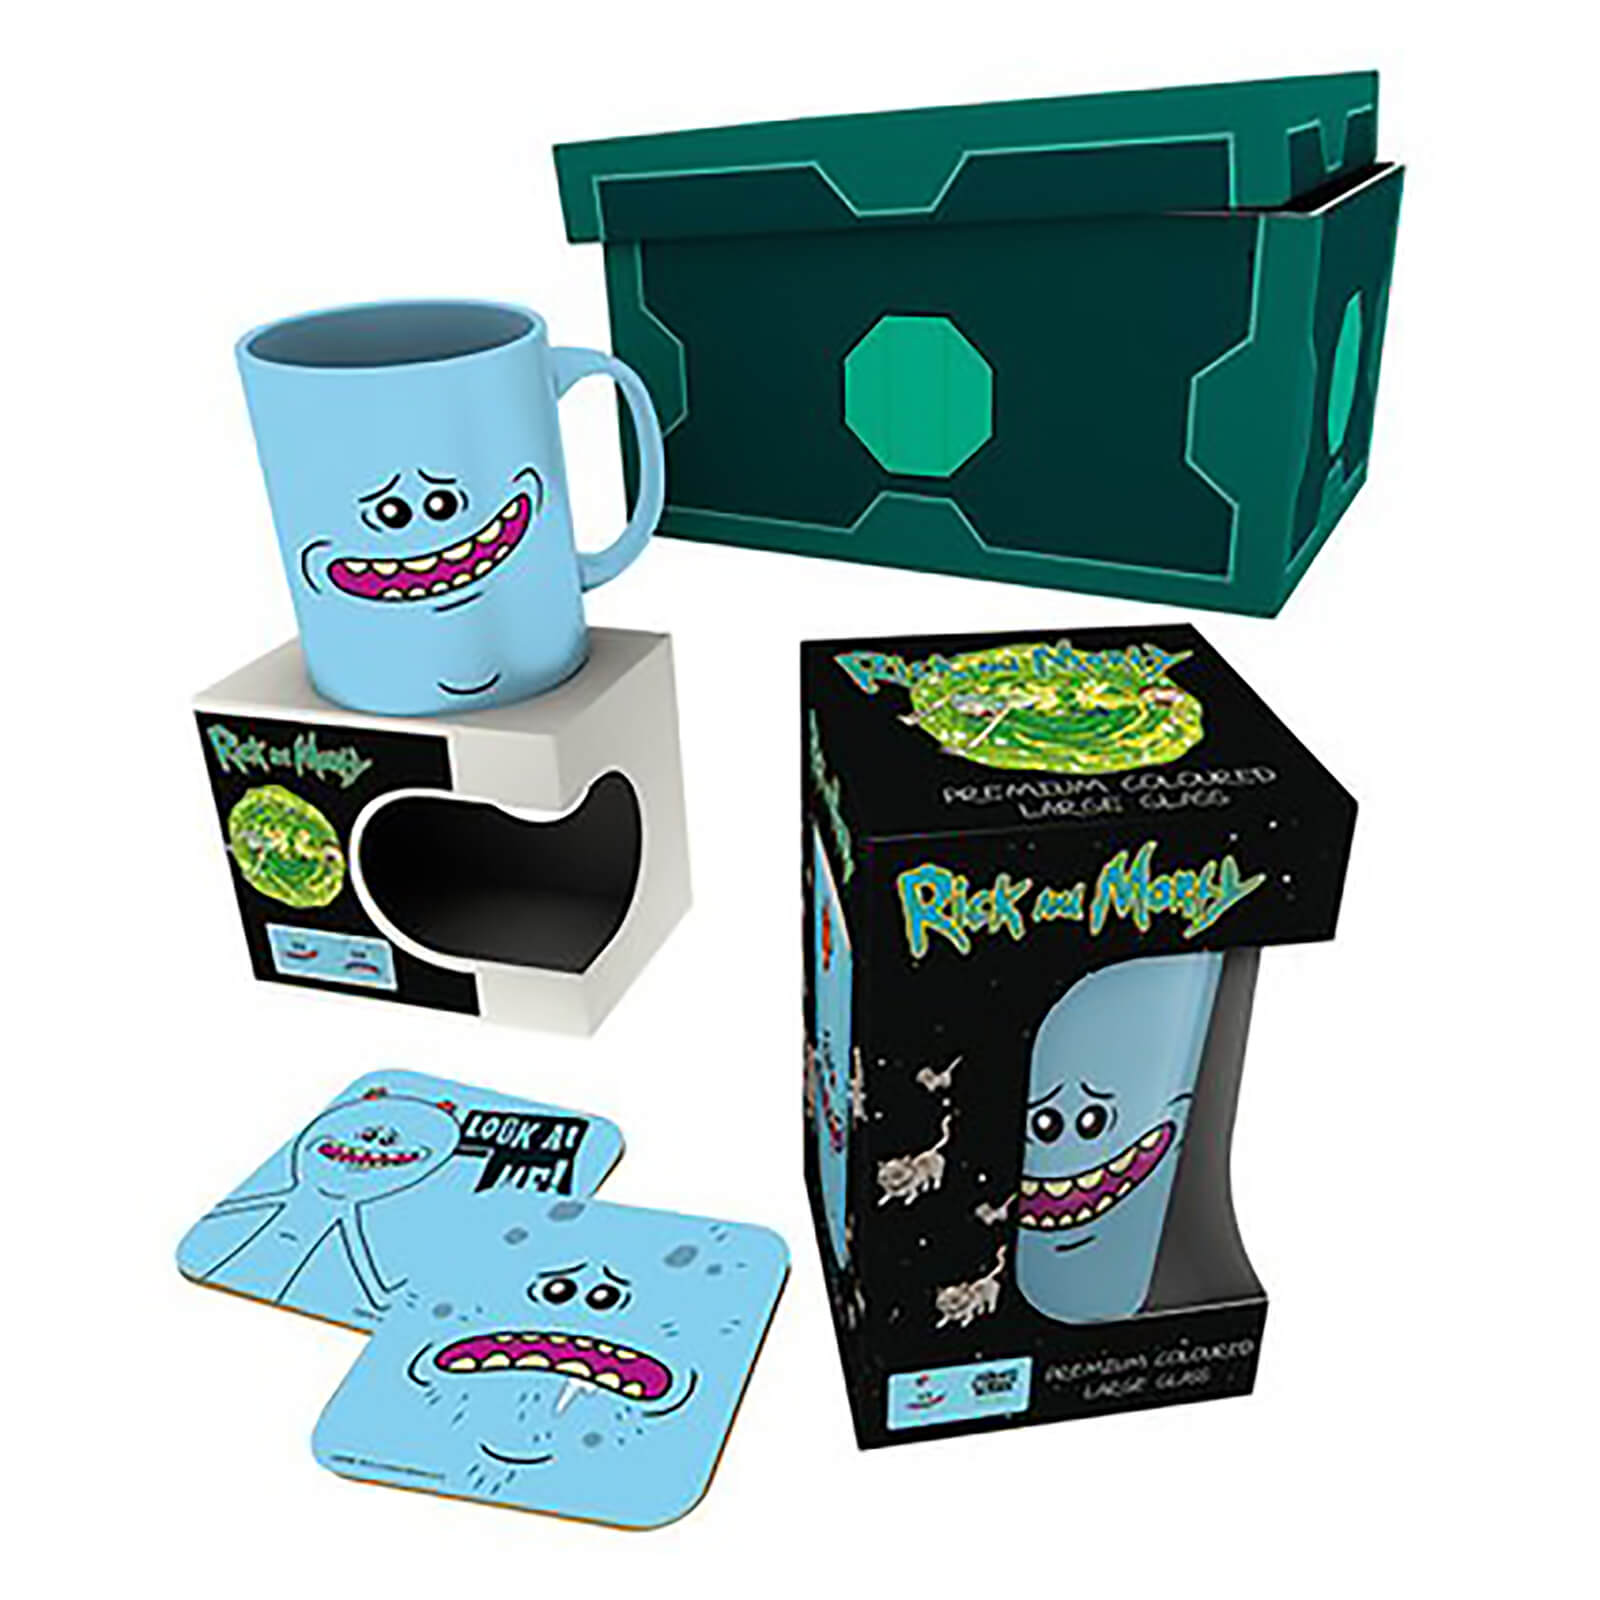 Caja regalo Meeseeks 'Rick y Morty'